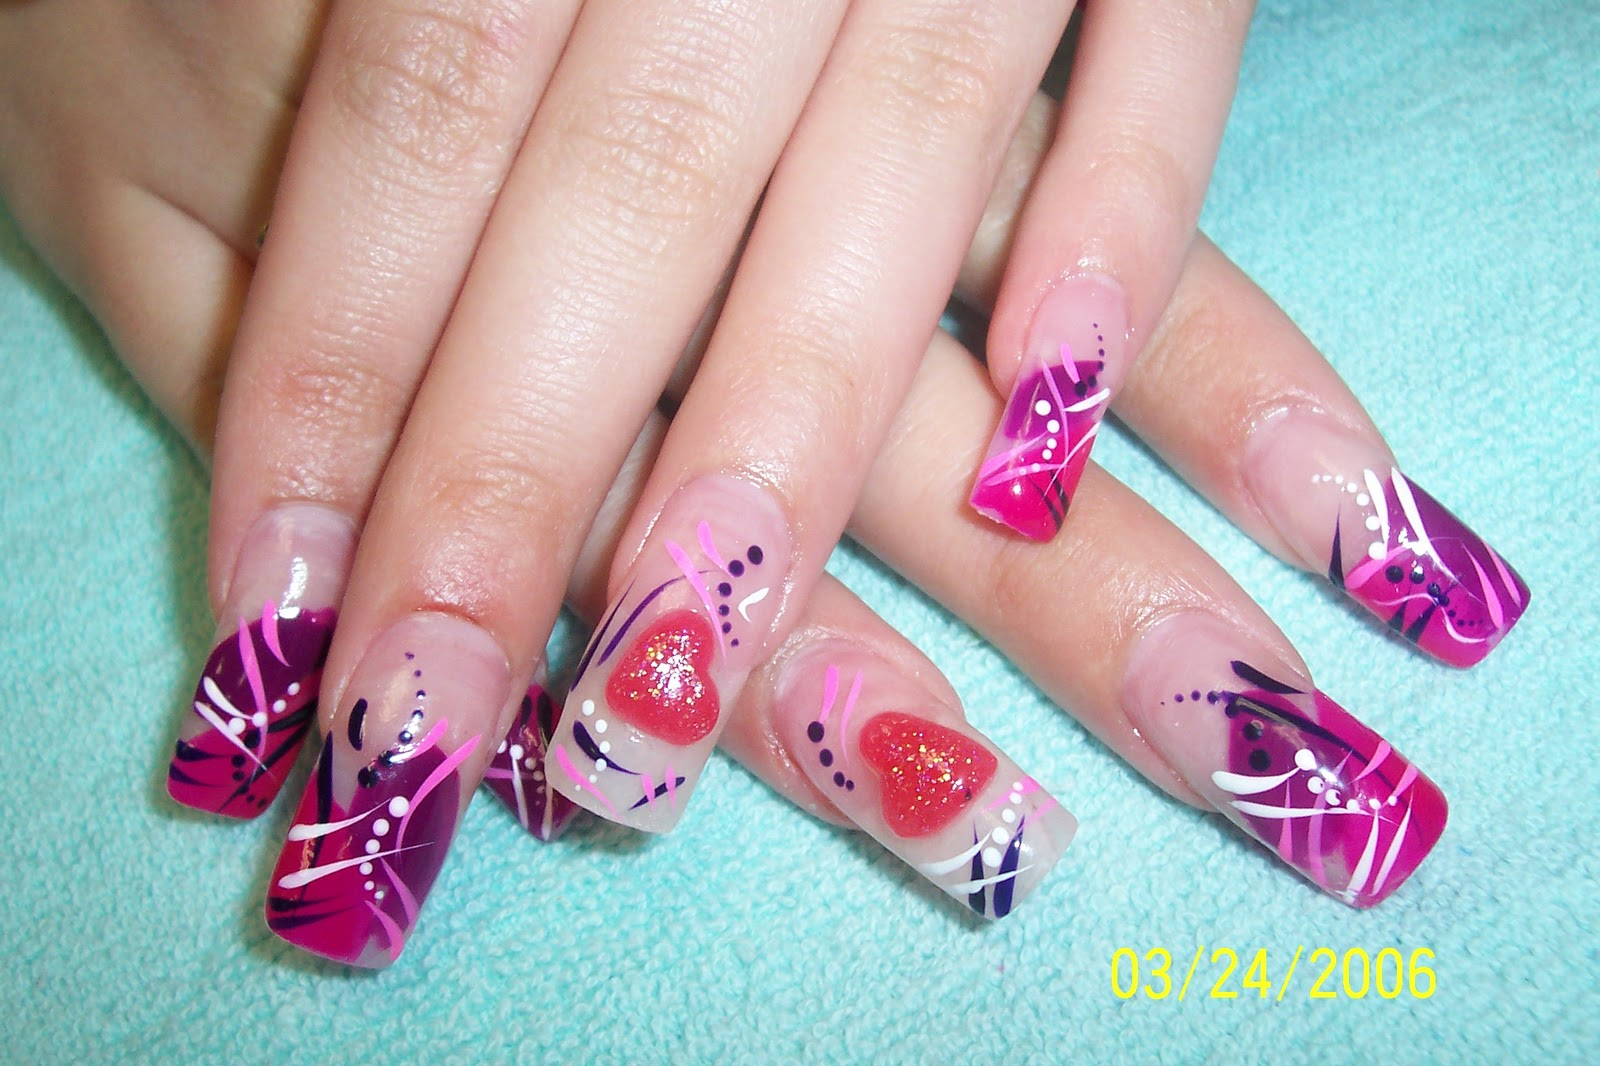 27 good Pictures Of Cute Nail Designs – ledufa.com